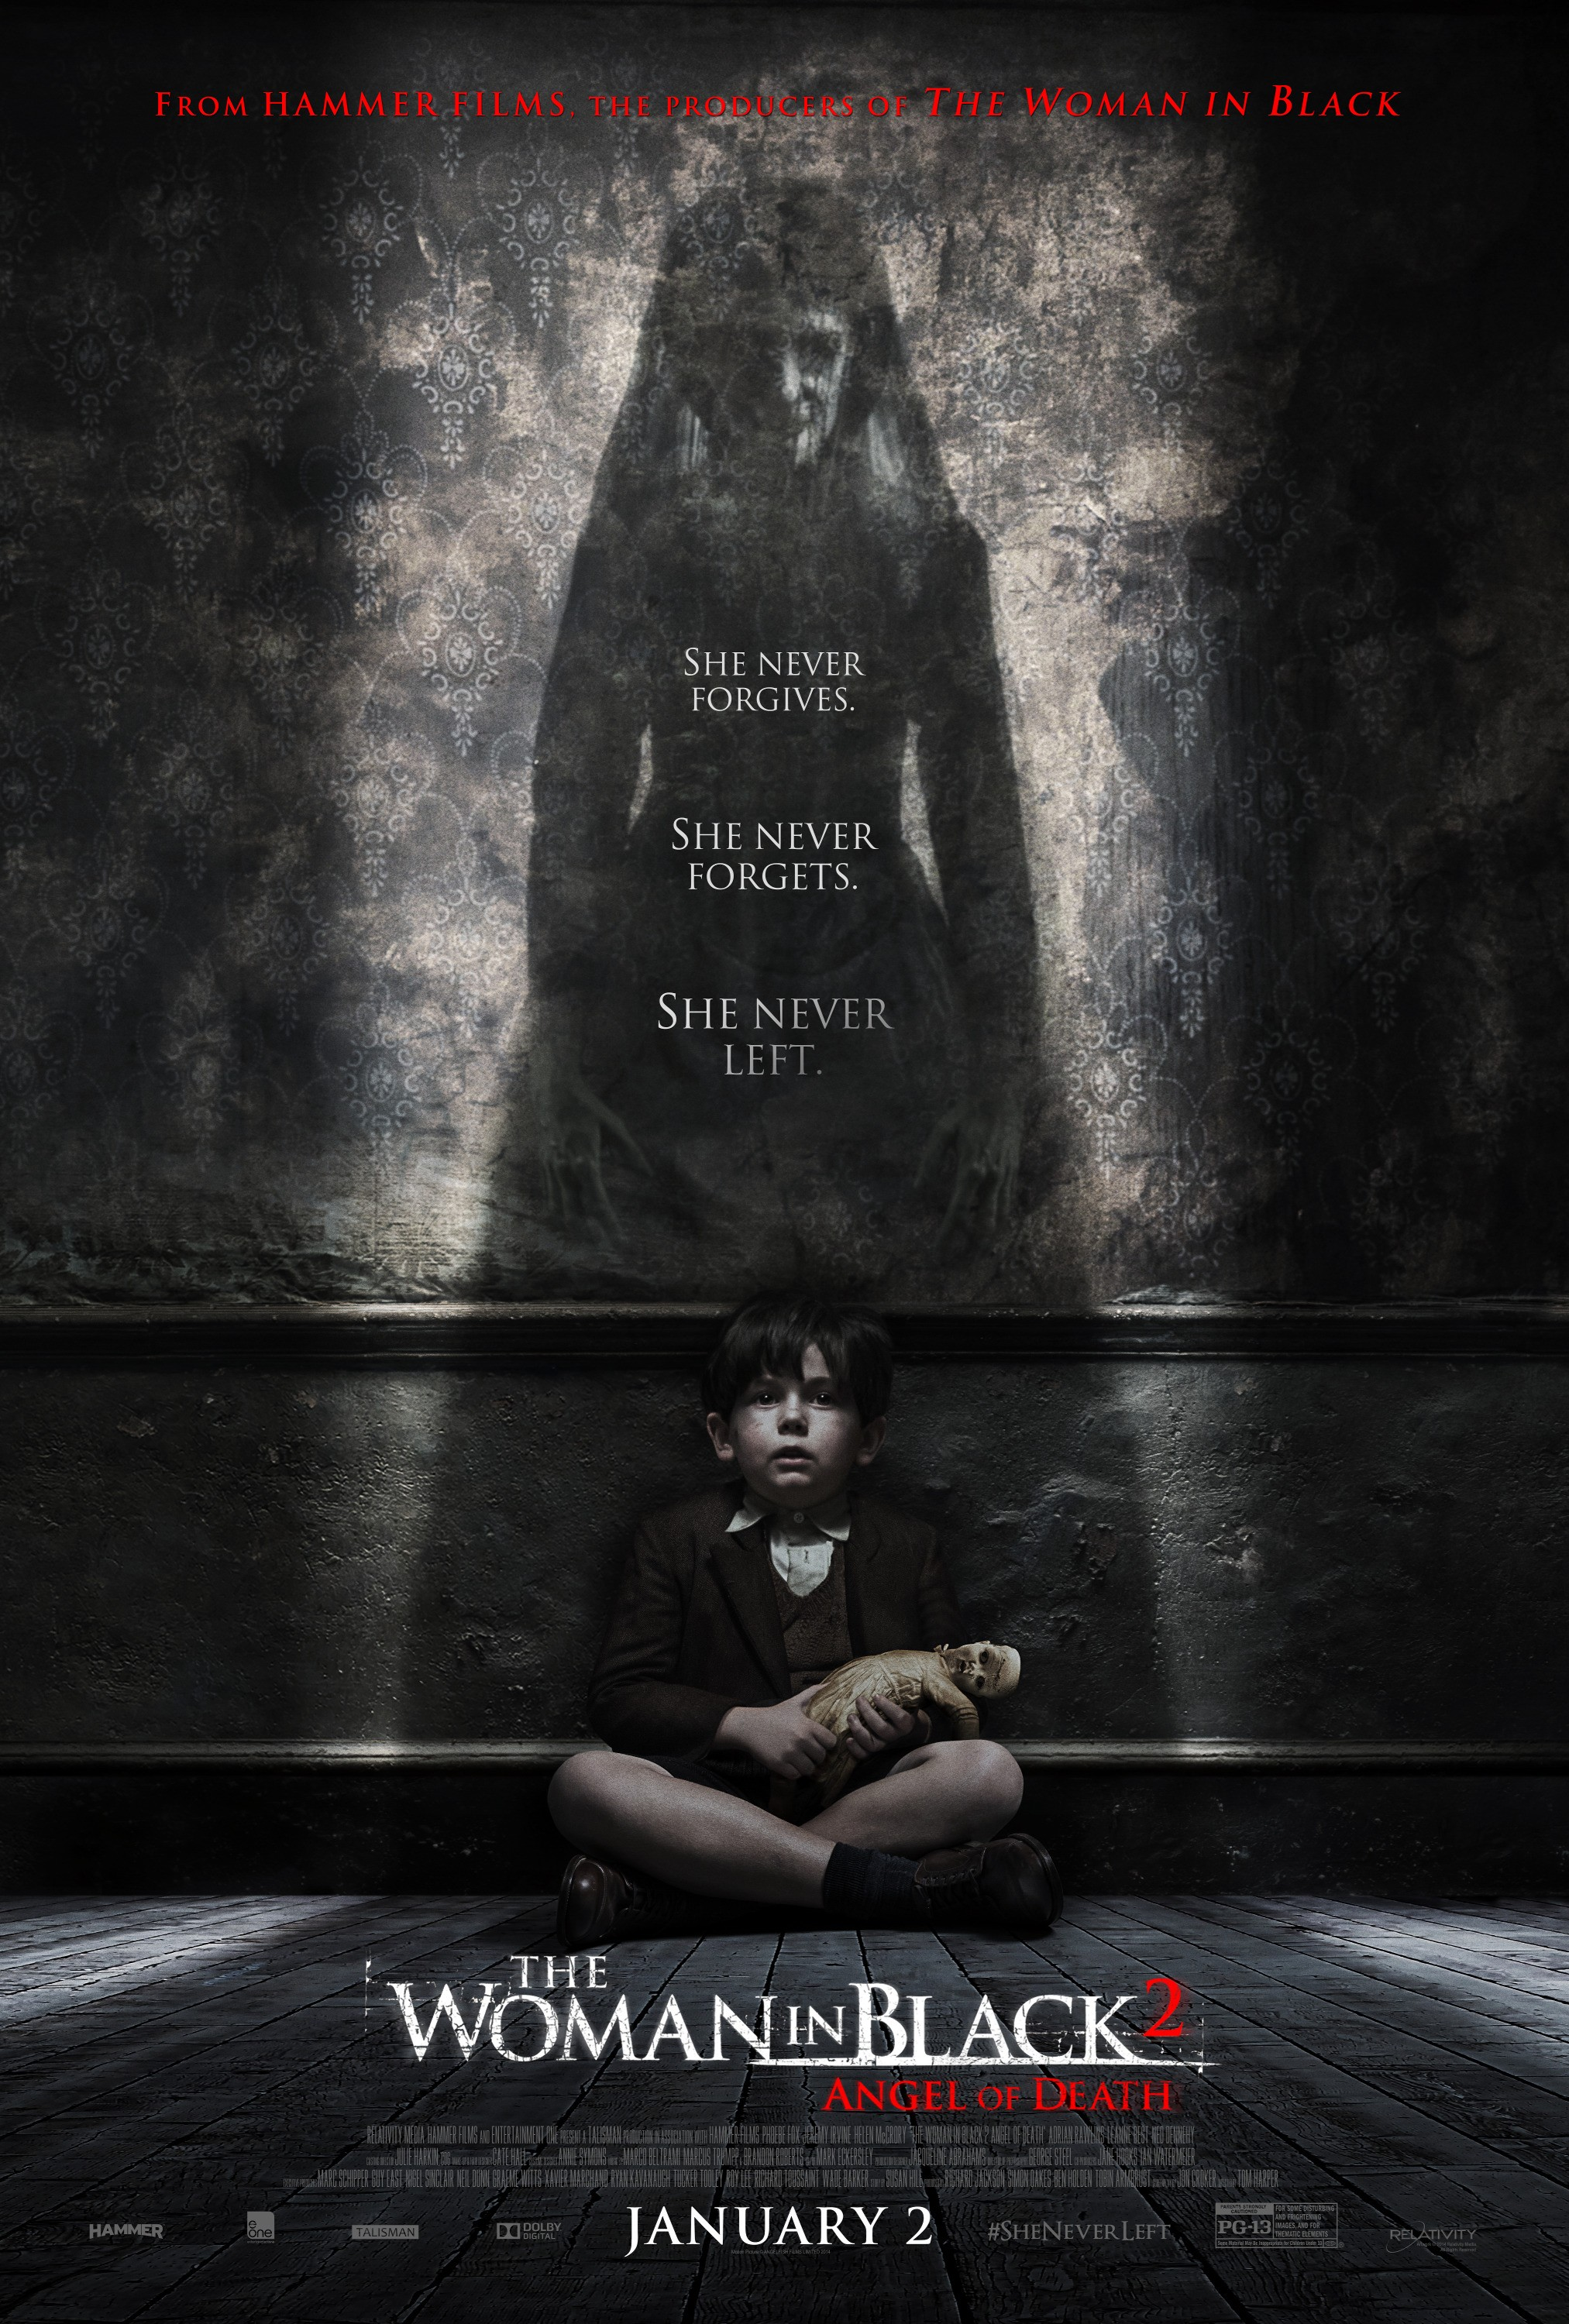 The Woman in Black Angel of Death-Official Poster XXLG-05NOVEMBRO2014